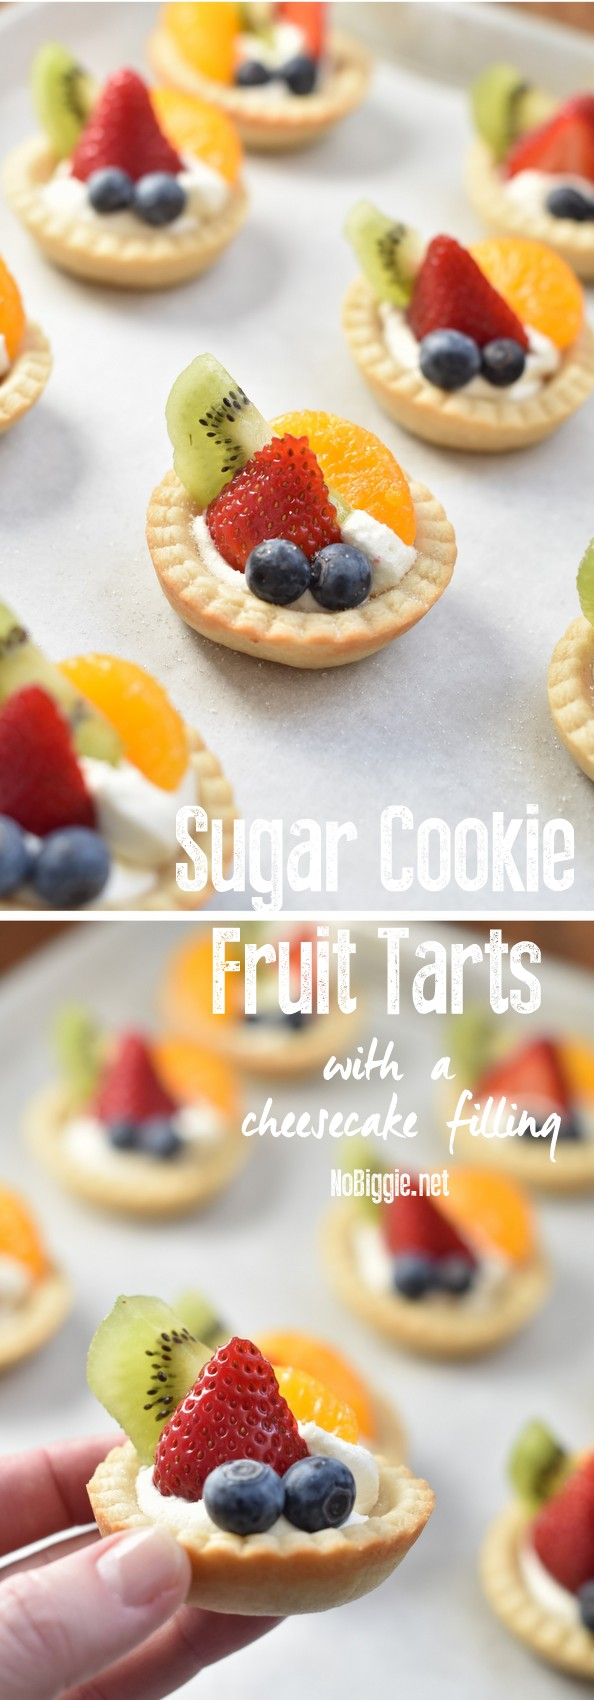 Sugar Cookie Fruit Tarts | These little tarts are so delicious and so easy to make at home, no special pans needed. #tarts #sugarcookiefruittarts #fruittarts #sugarcookies #tartrecipes